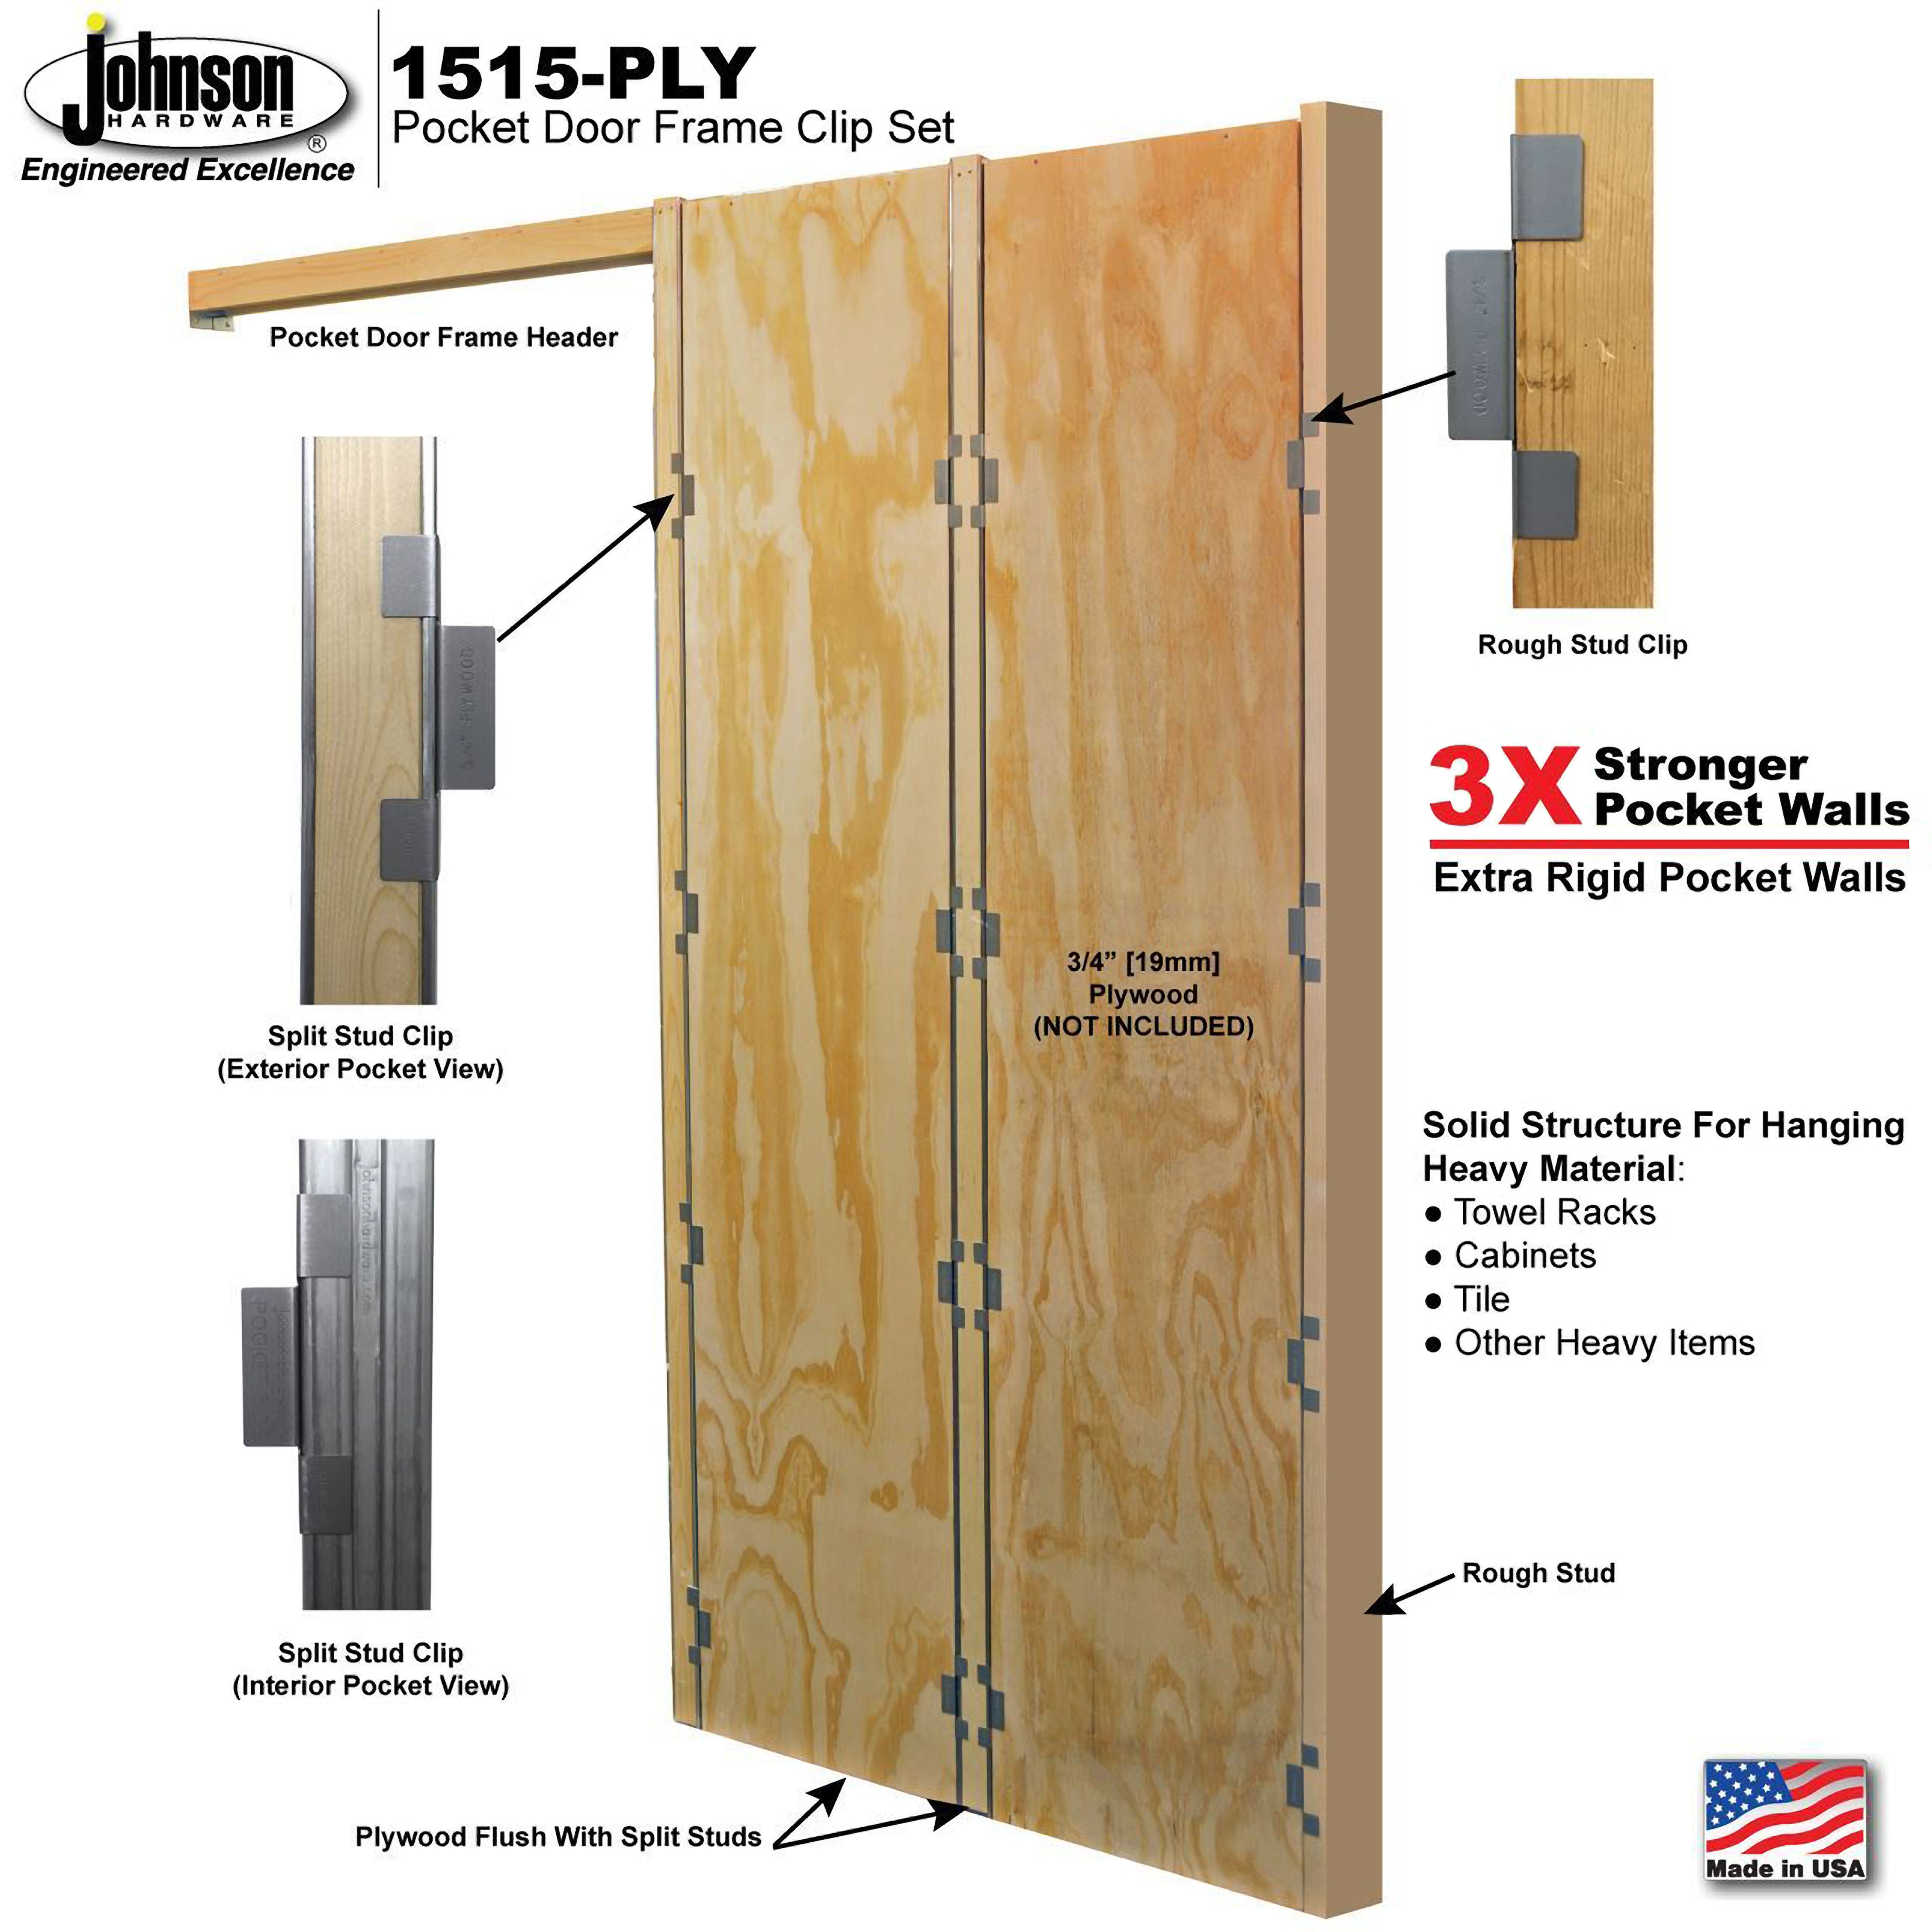 1515 PLY Pocket Door Frame Plywood Clip Set